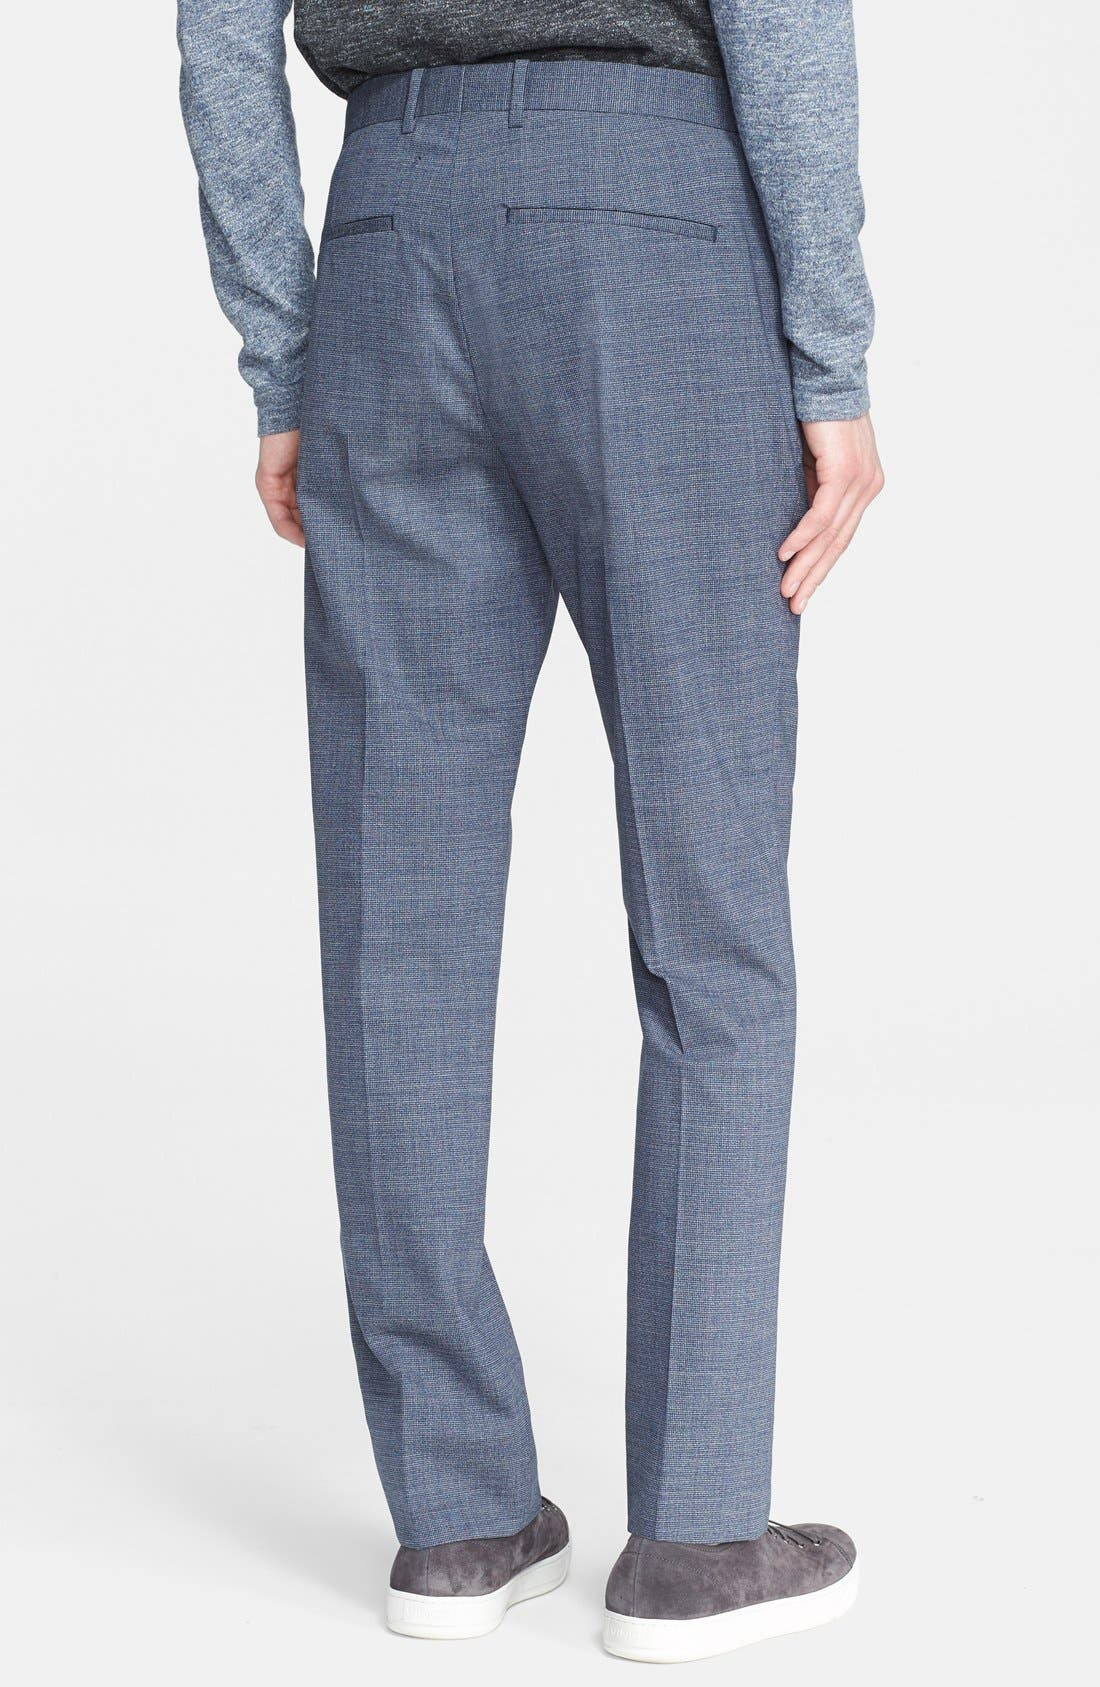 THEORY, 'Jake' Stretch Wool Trousers, Alternate thumbnail 2, color, 462